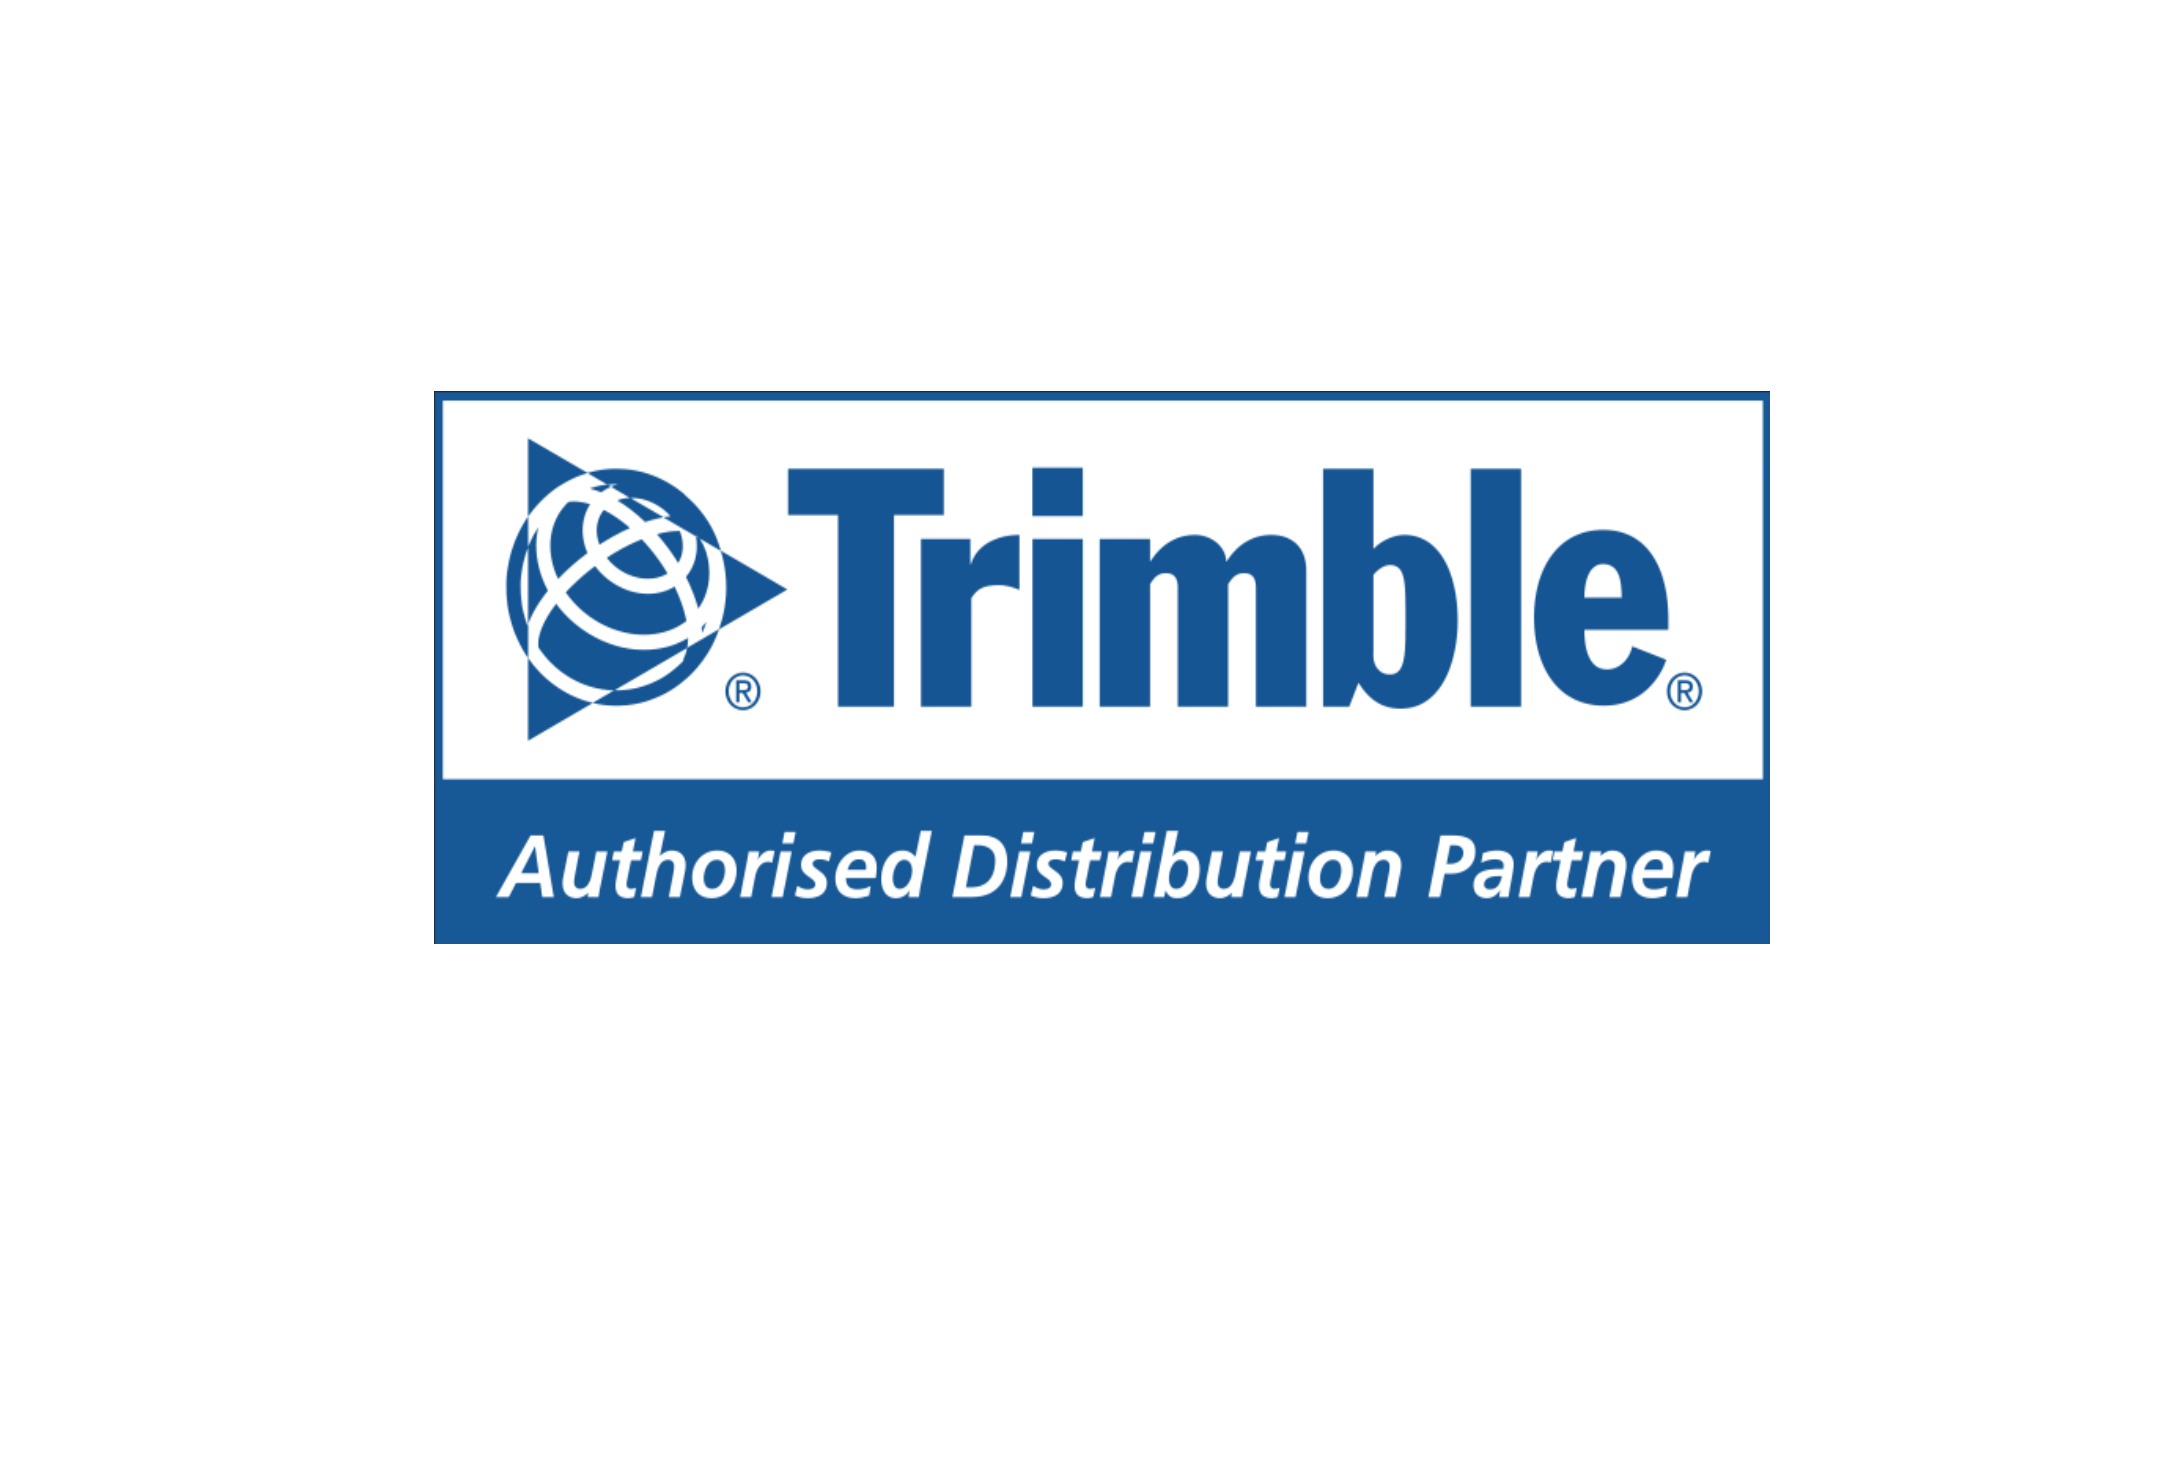 Logo de Trimble